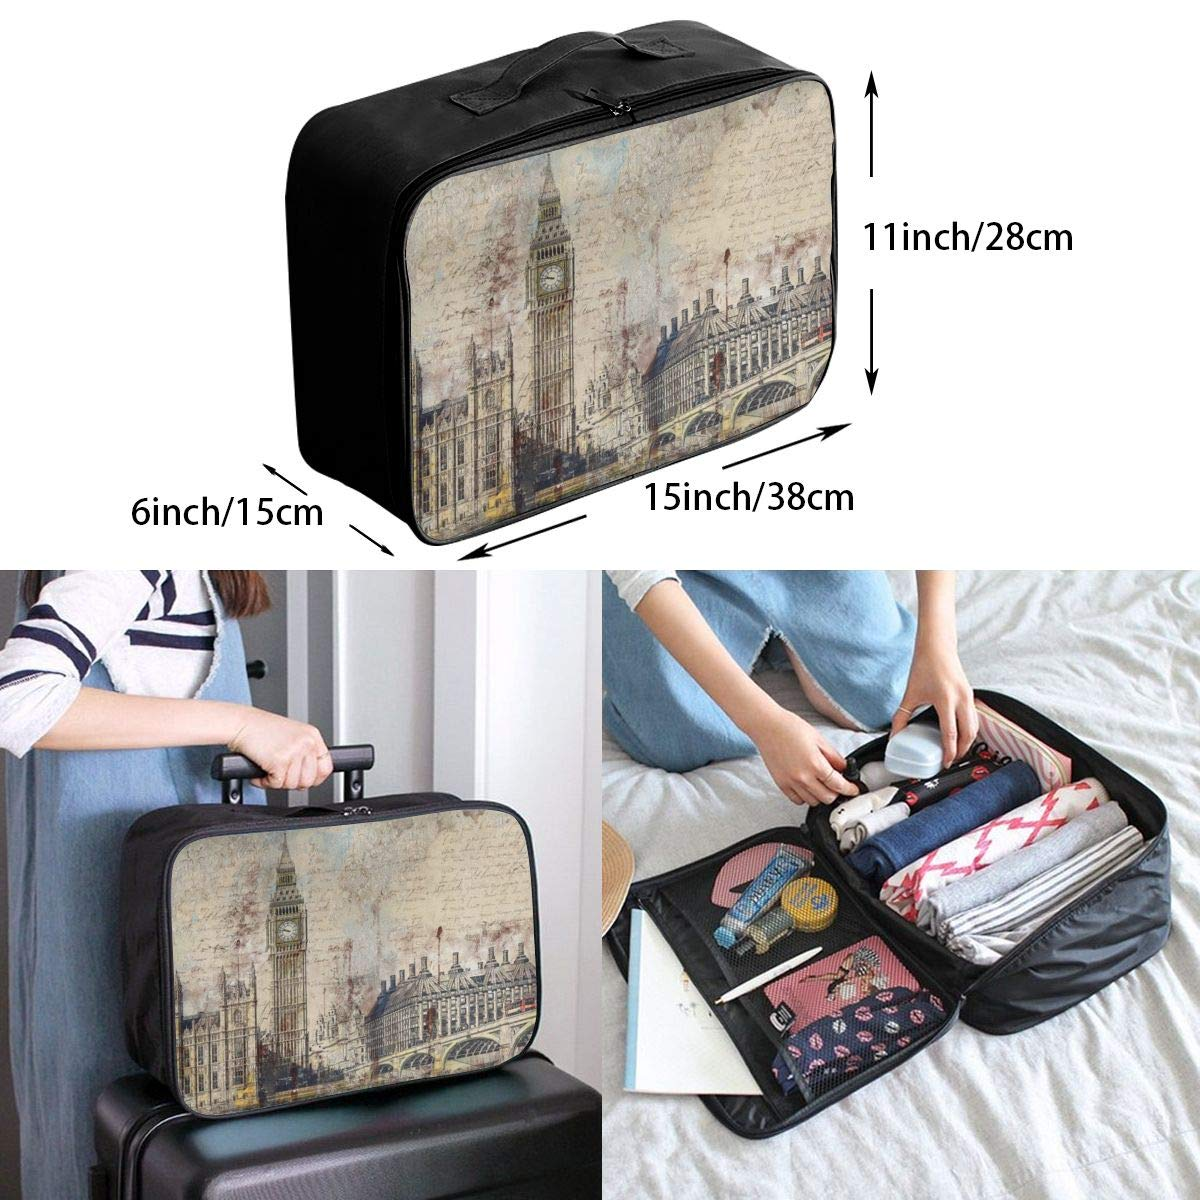 London Westminster Bridge Nostalgia Thames Travel Lightweight Waterproof Foldable Storage Carry Luggage Large Capacity Portable Luggage Bag Duffel Bag